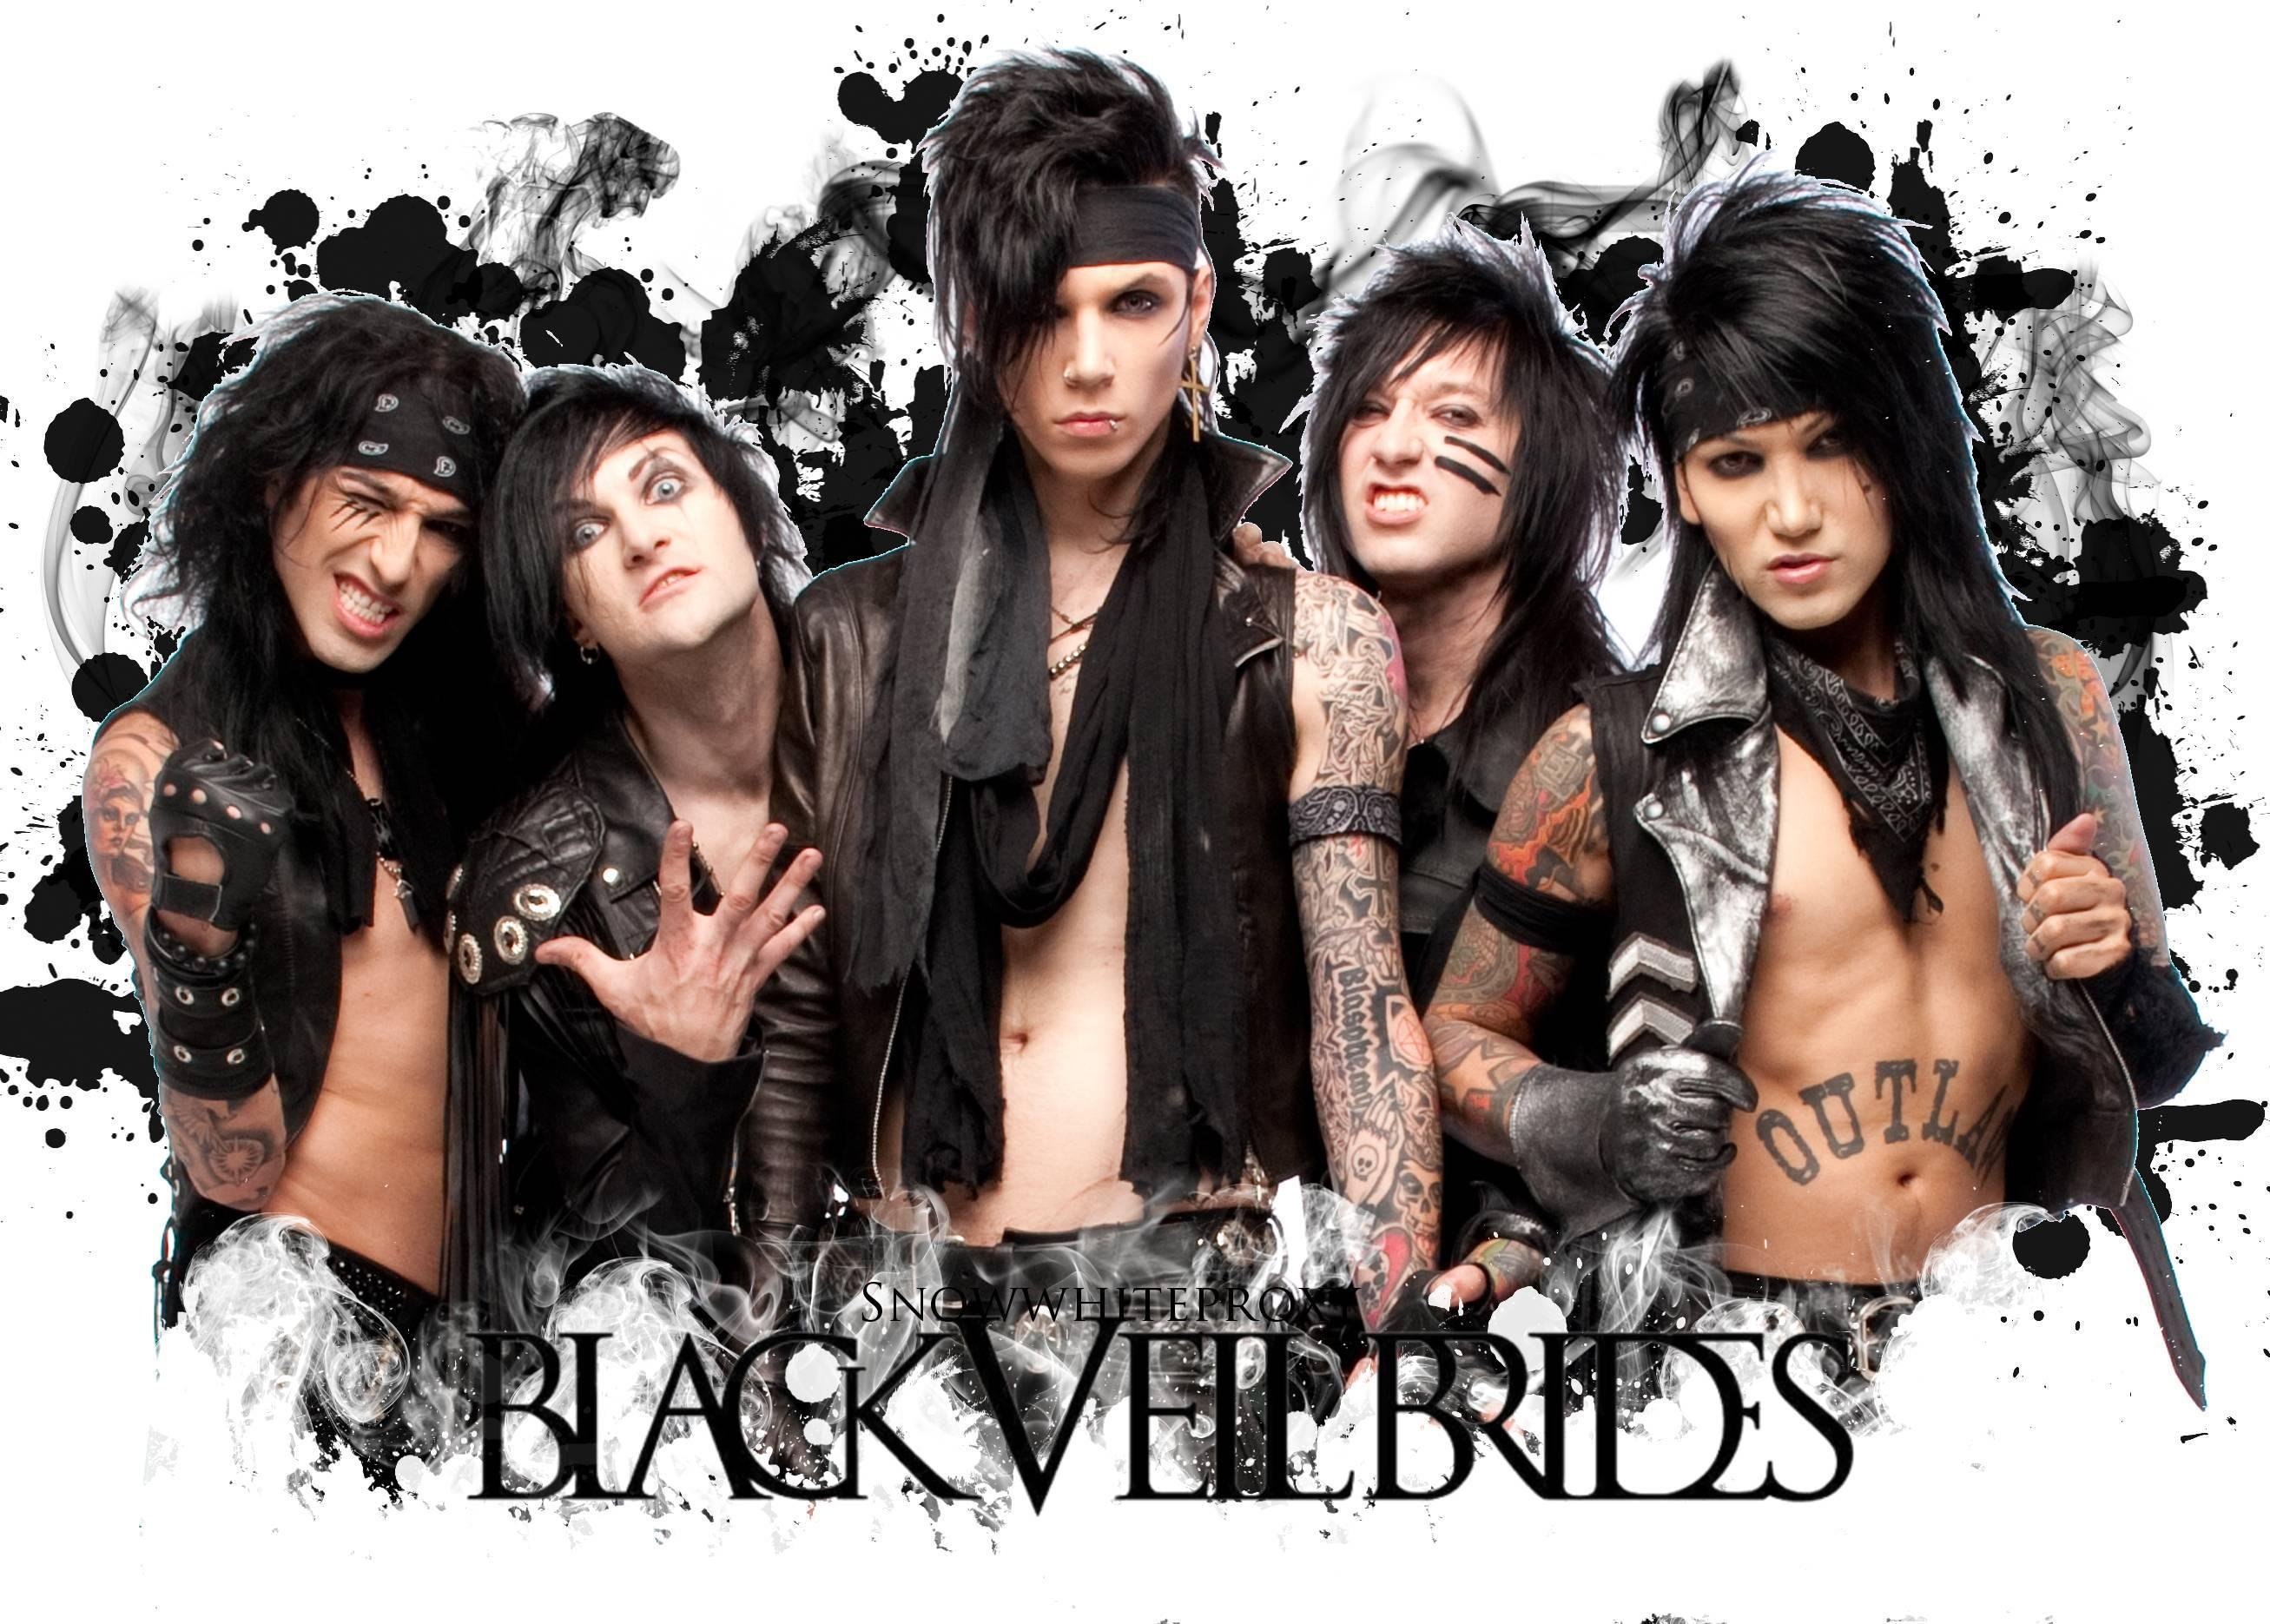 Quite black veil brides all became